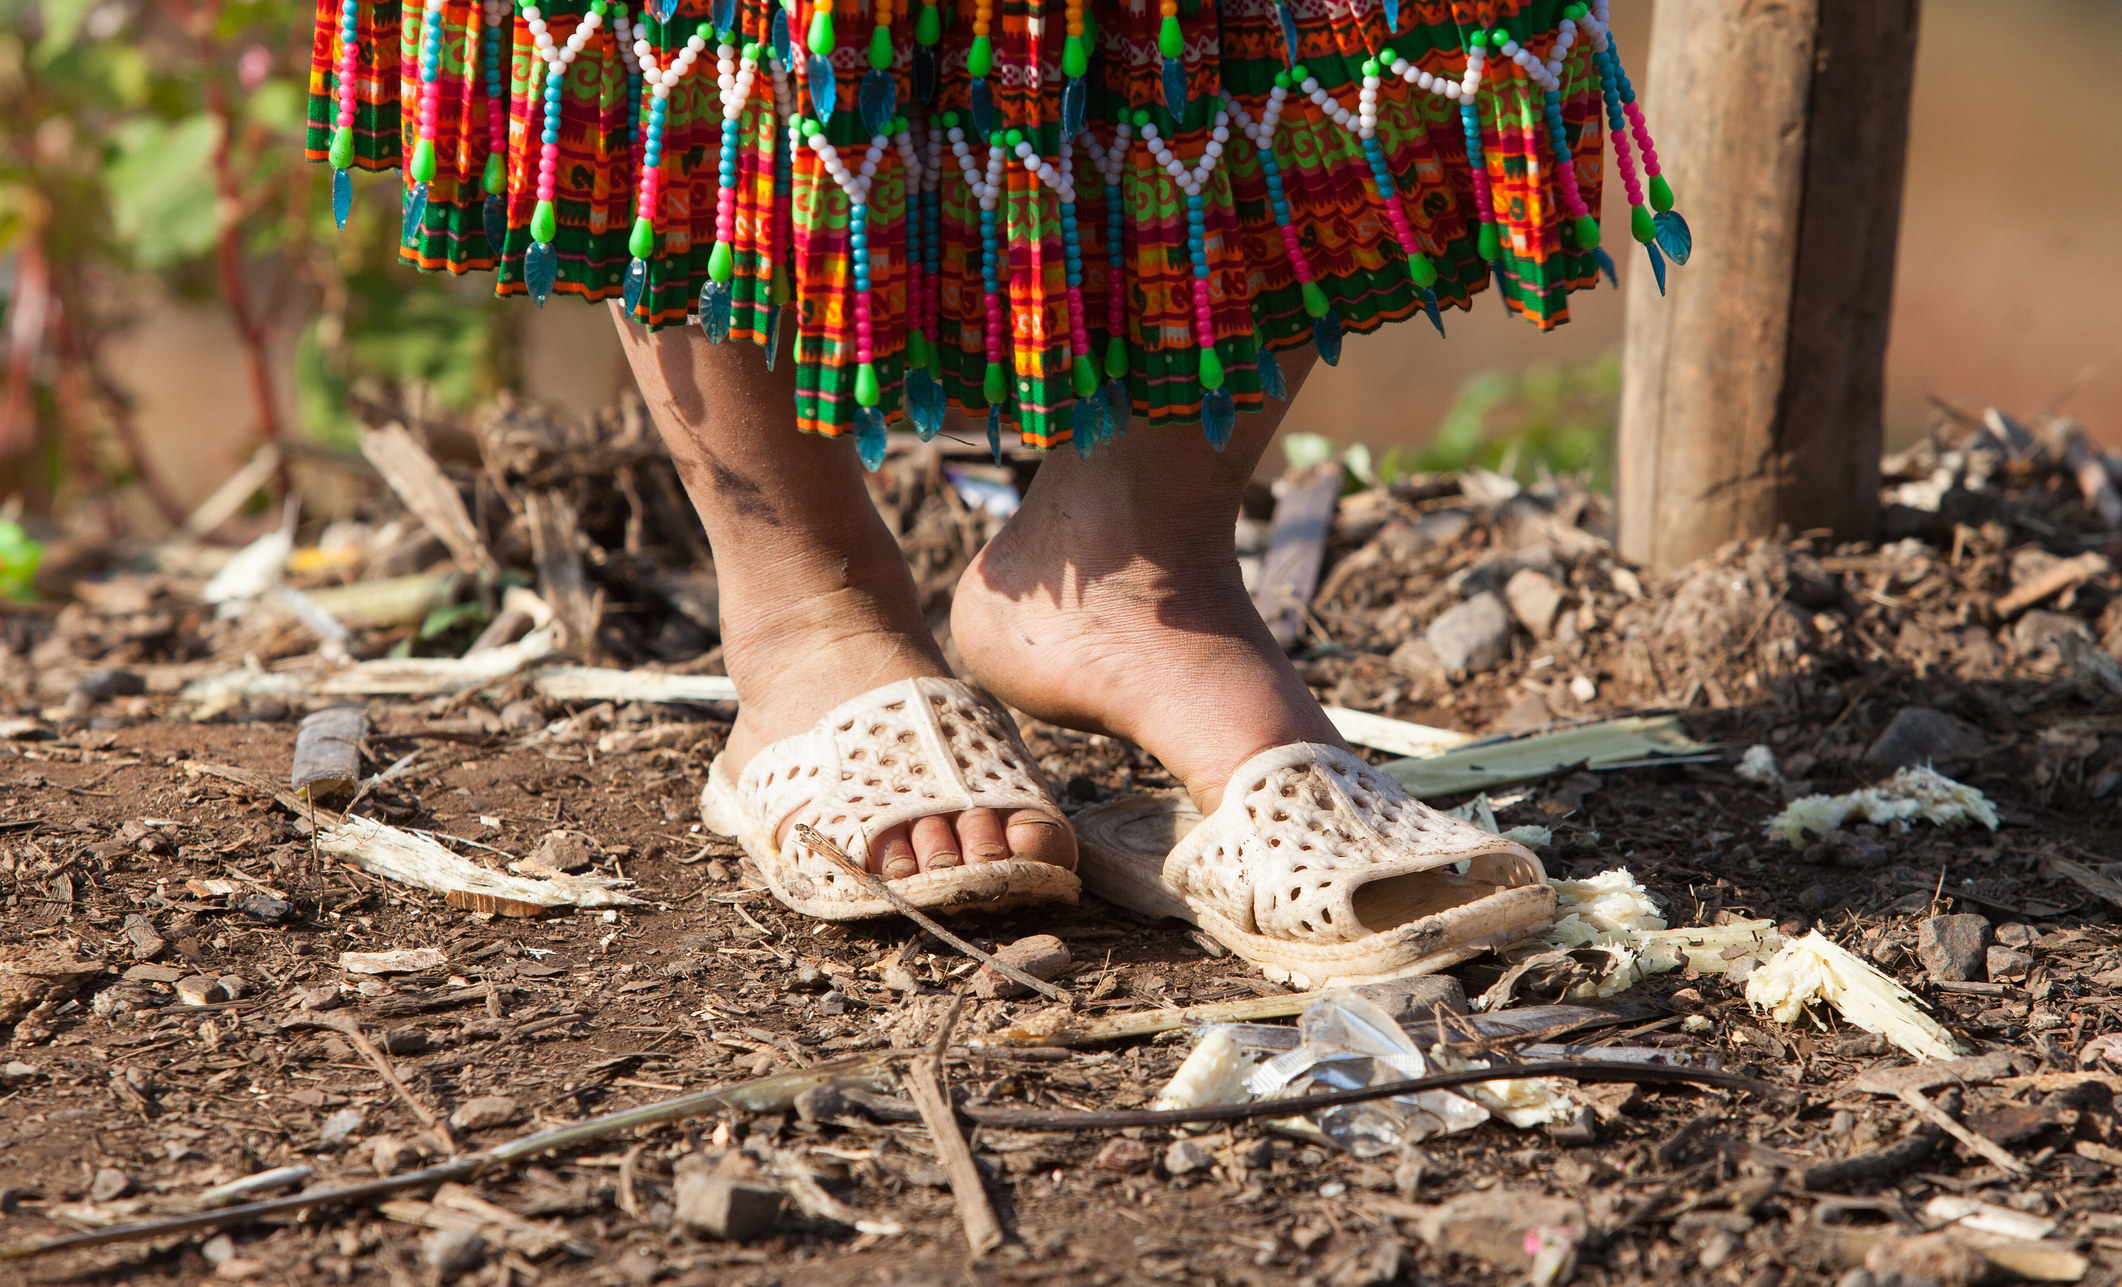 A child's feet in sandals standing on dirt.